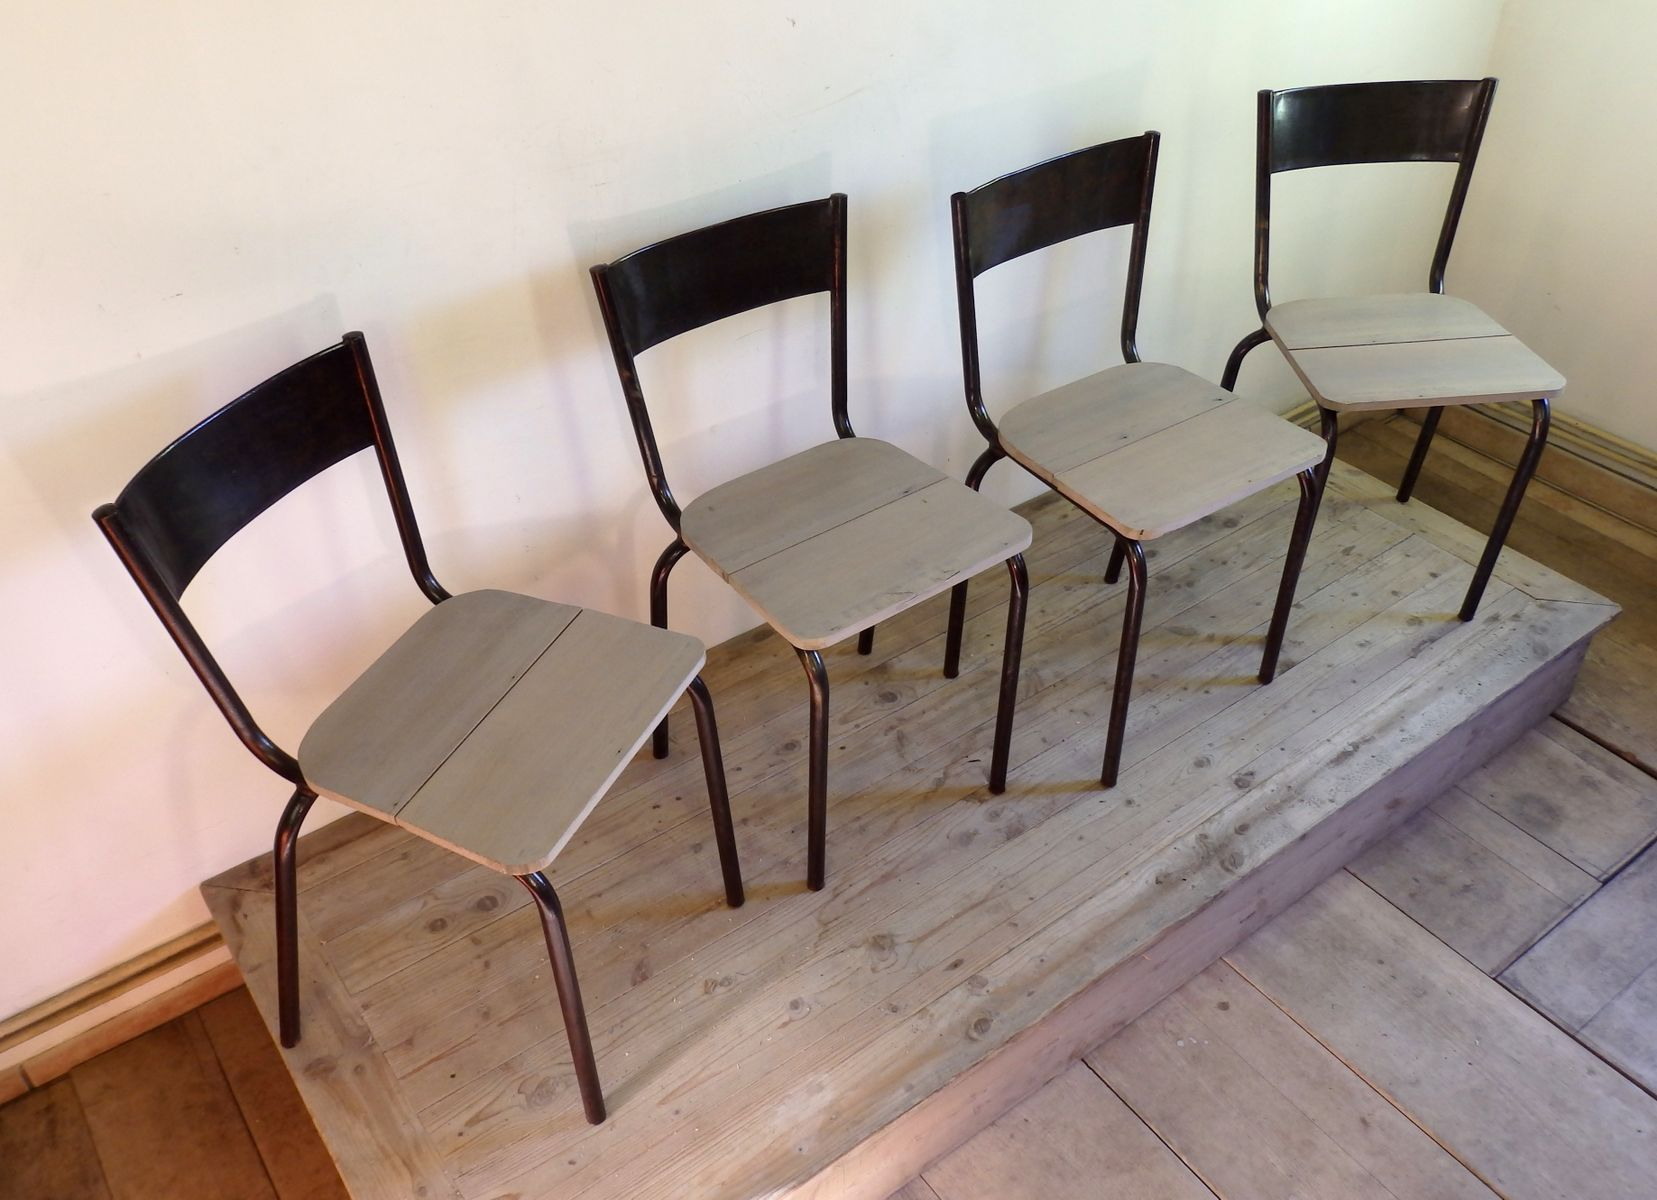 Mullca 510 industrial chairs 1960s set of 4 for sale at for Chaise mullca 510